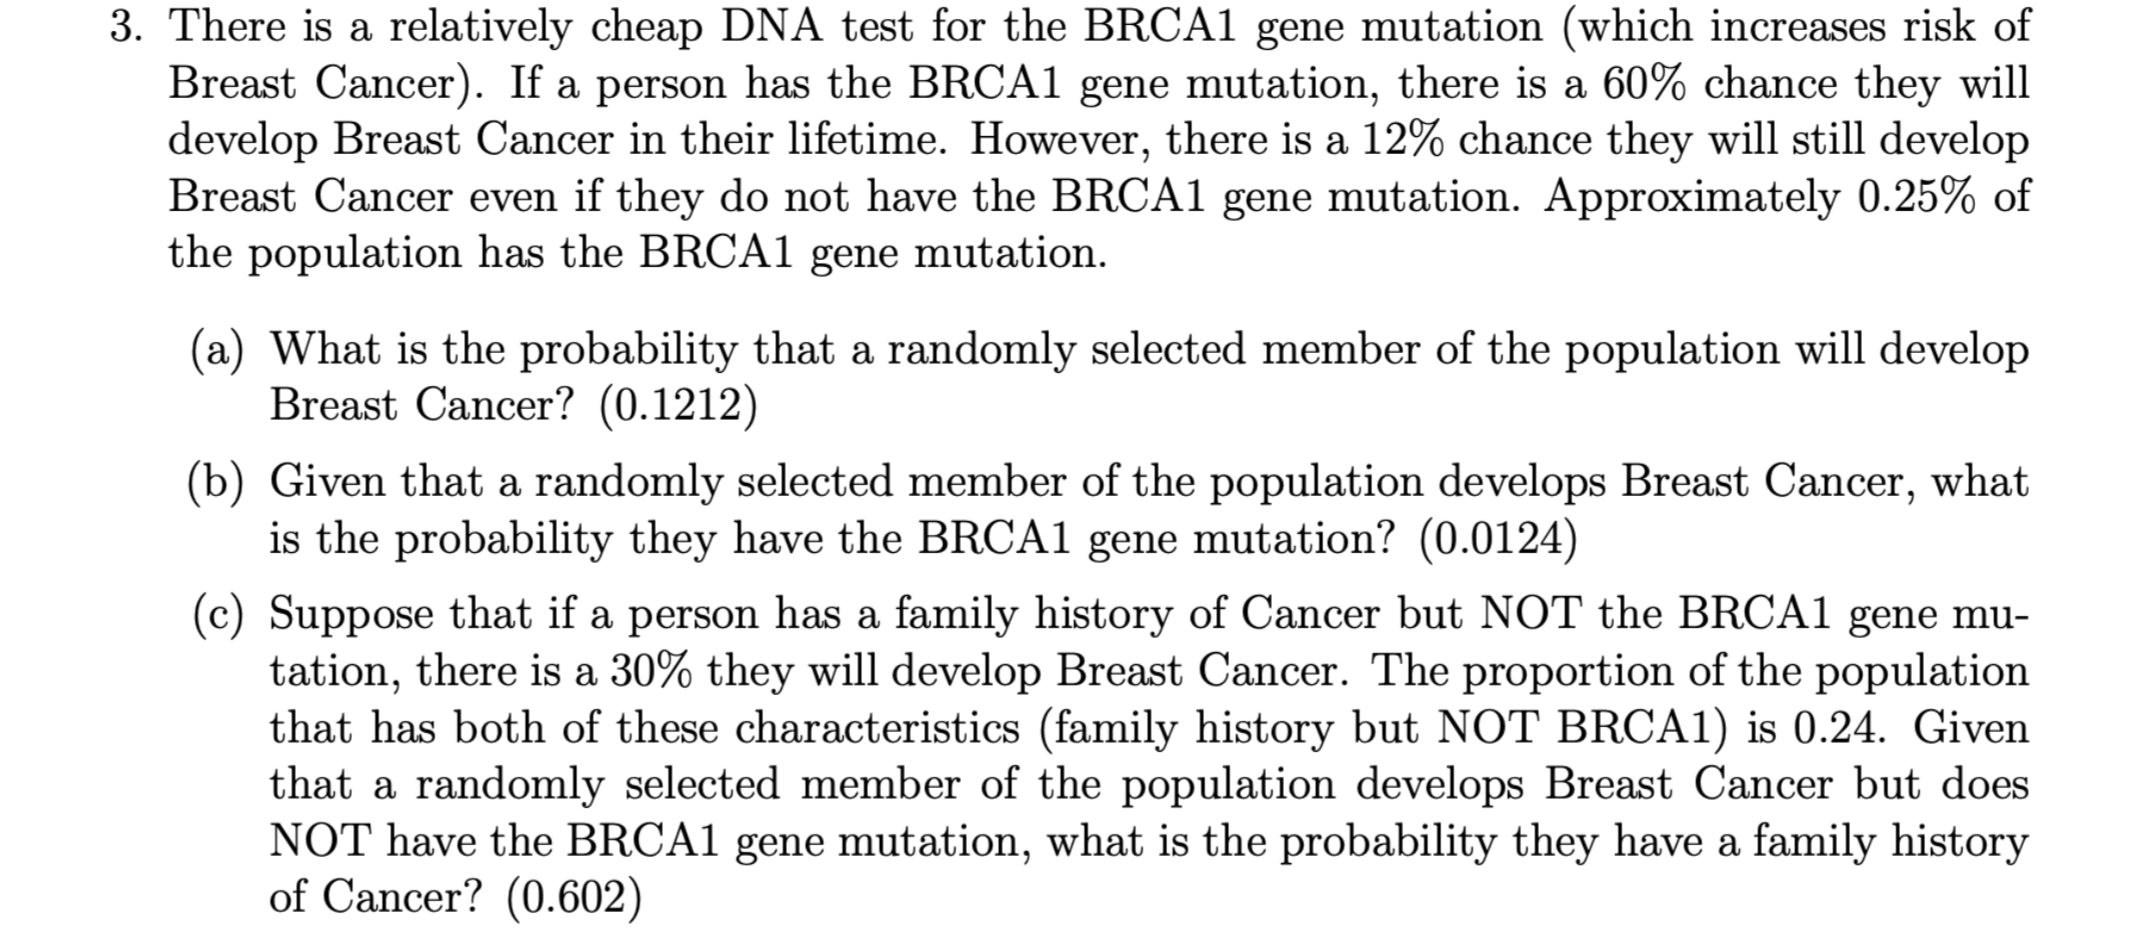 3. There is a relatively cheap DNA test for the BRCA1 gene mutation (which increases risk of Breast Cancer). If a person has